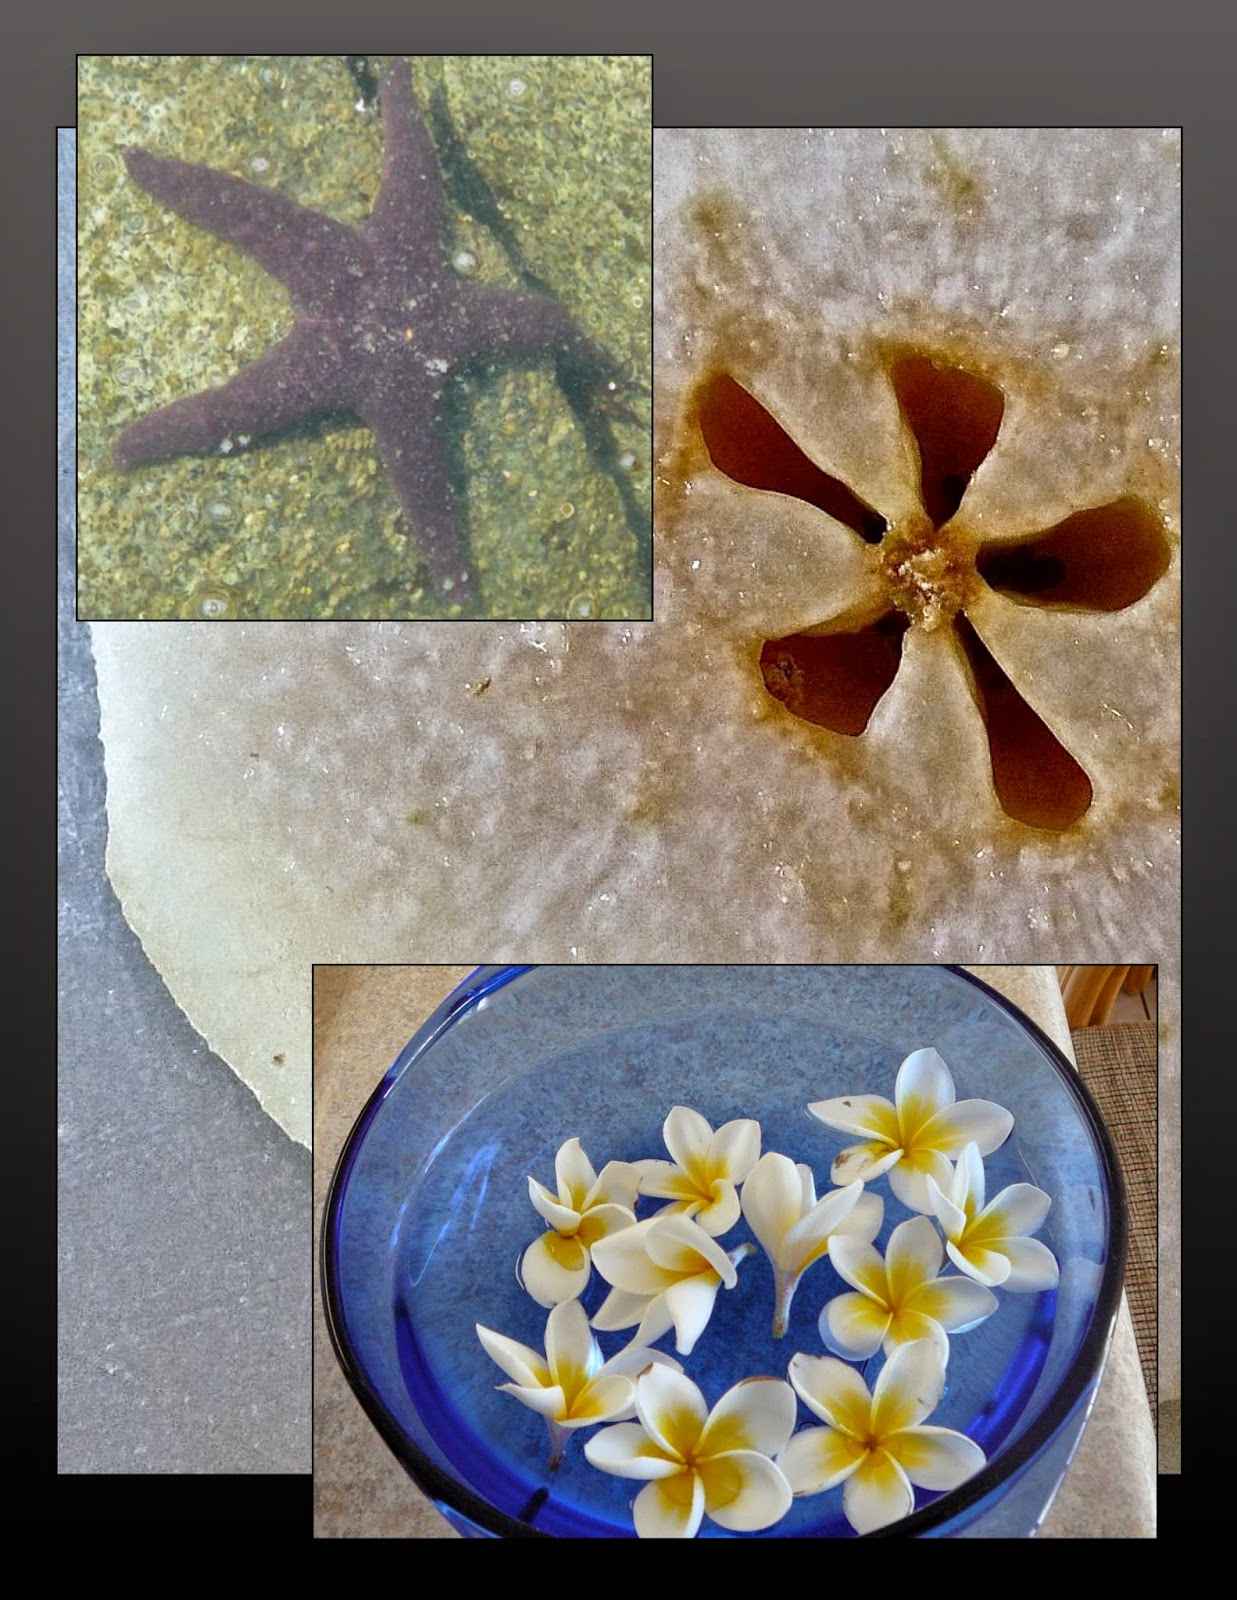 Fives in starfish, fruit core, flowers